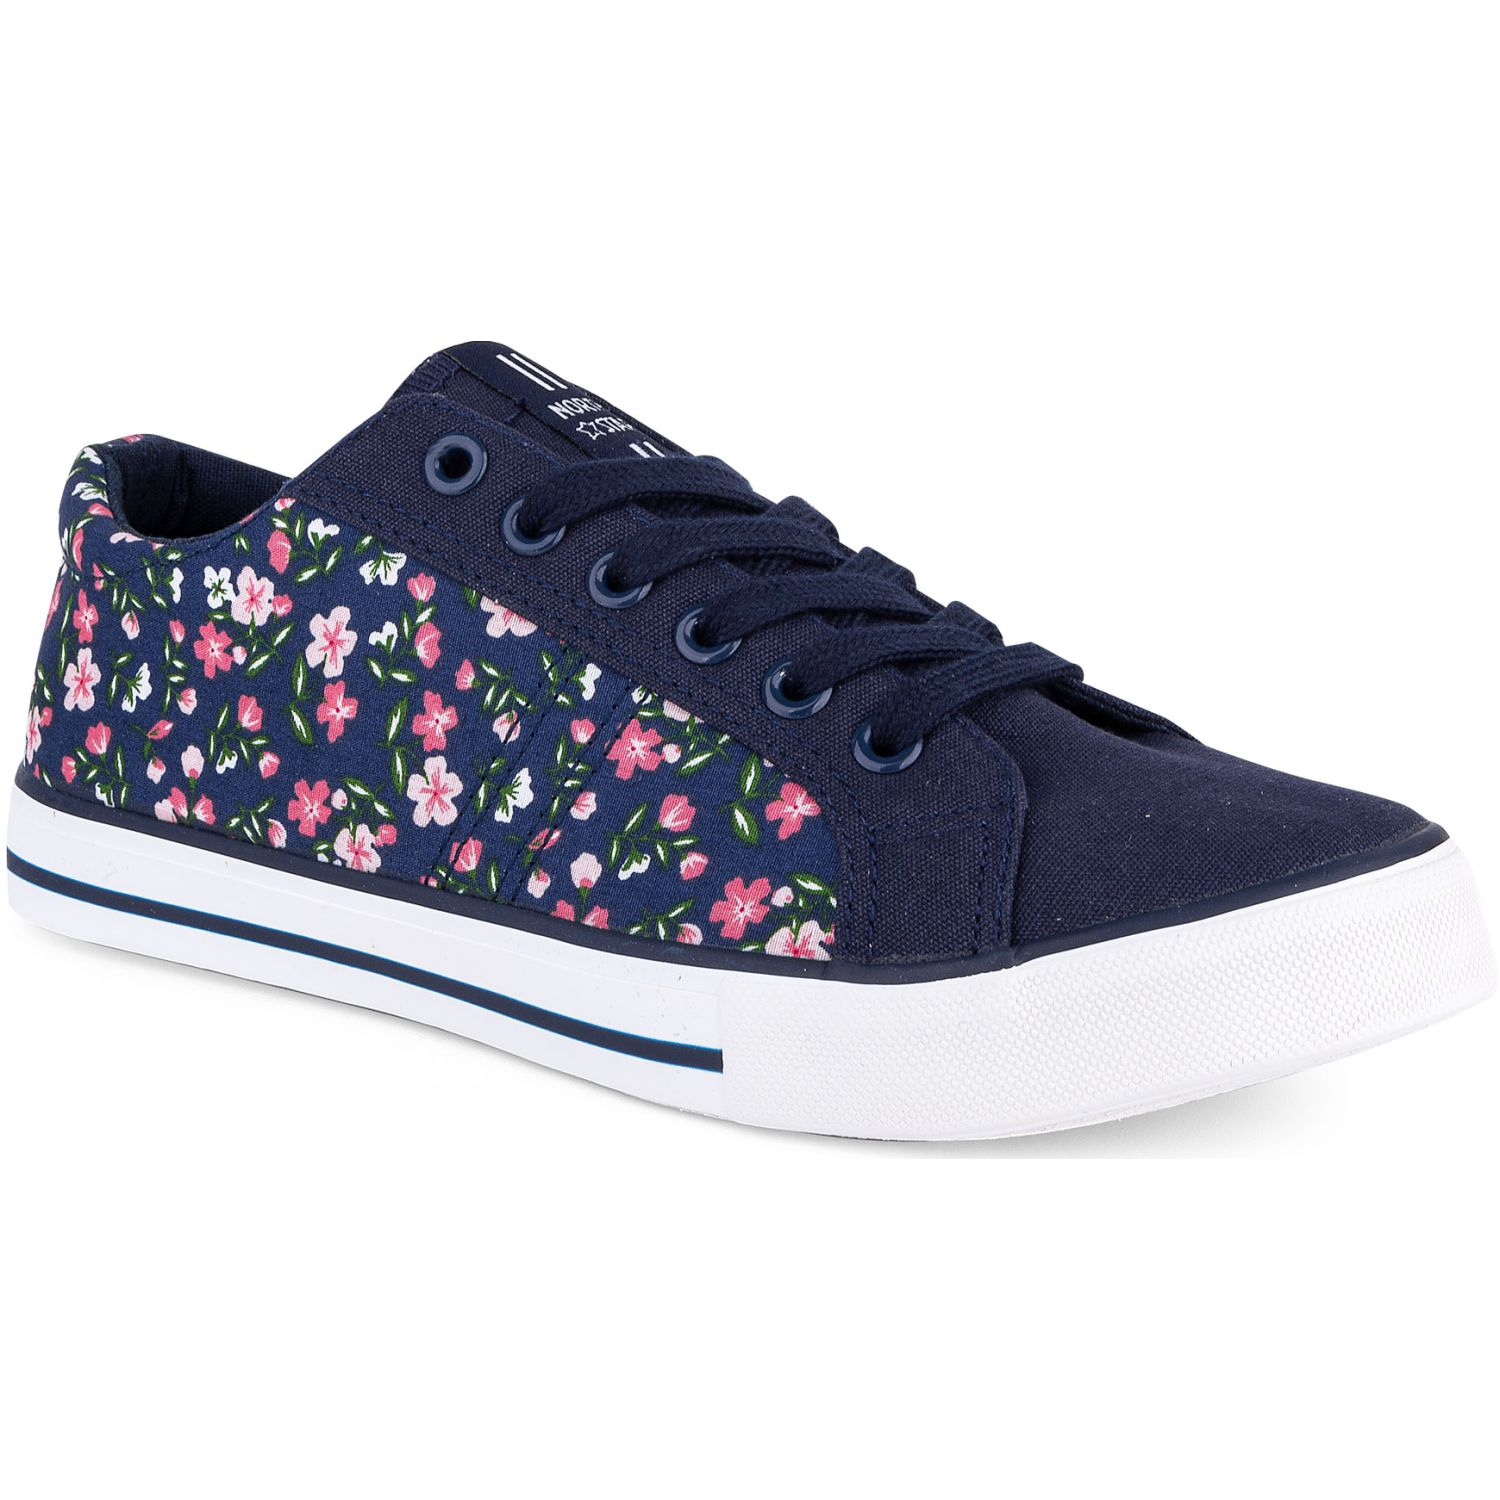 North Star las vegas Azul Zapatillas Fashion